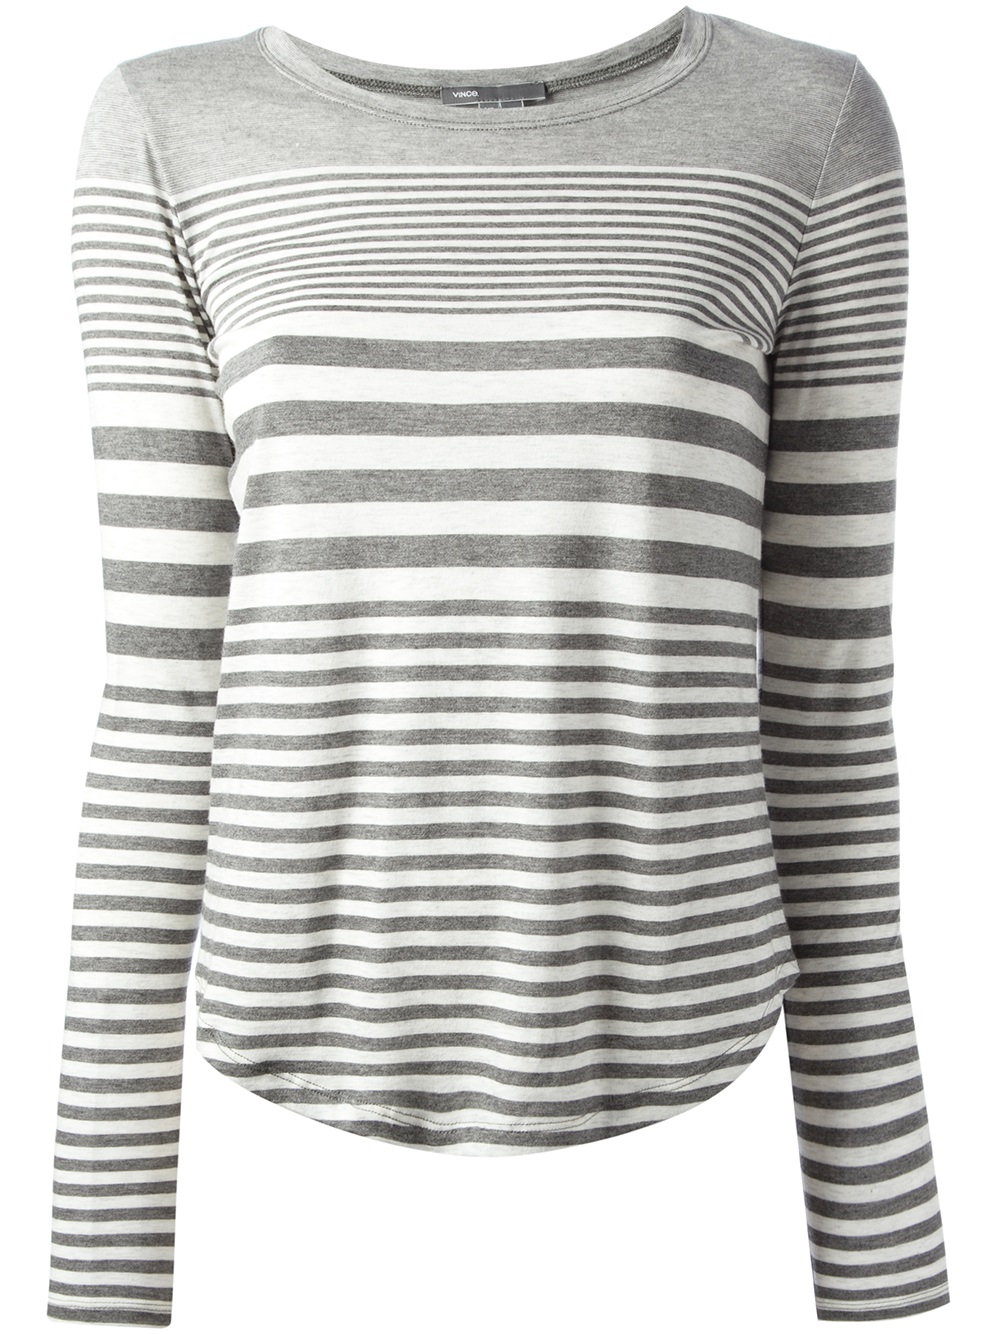 Lyst vince striped t shirt in gray for Grey striped t shirt